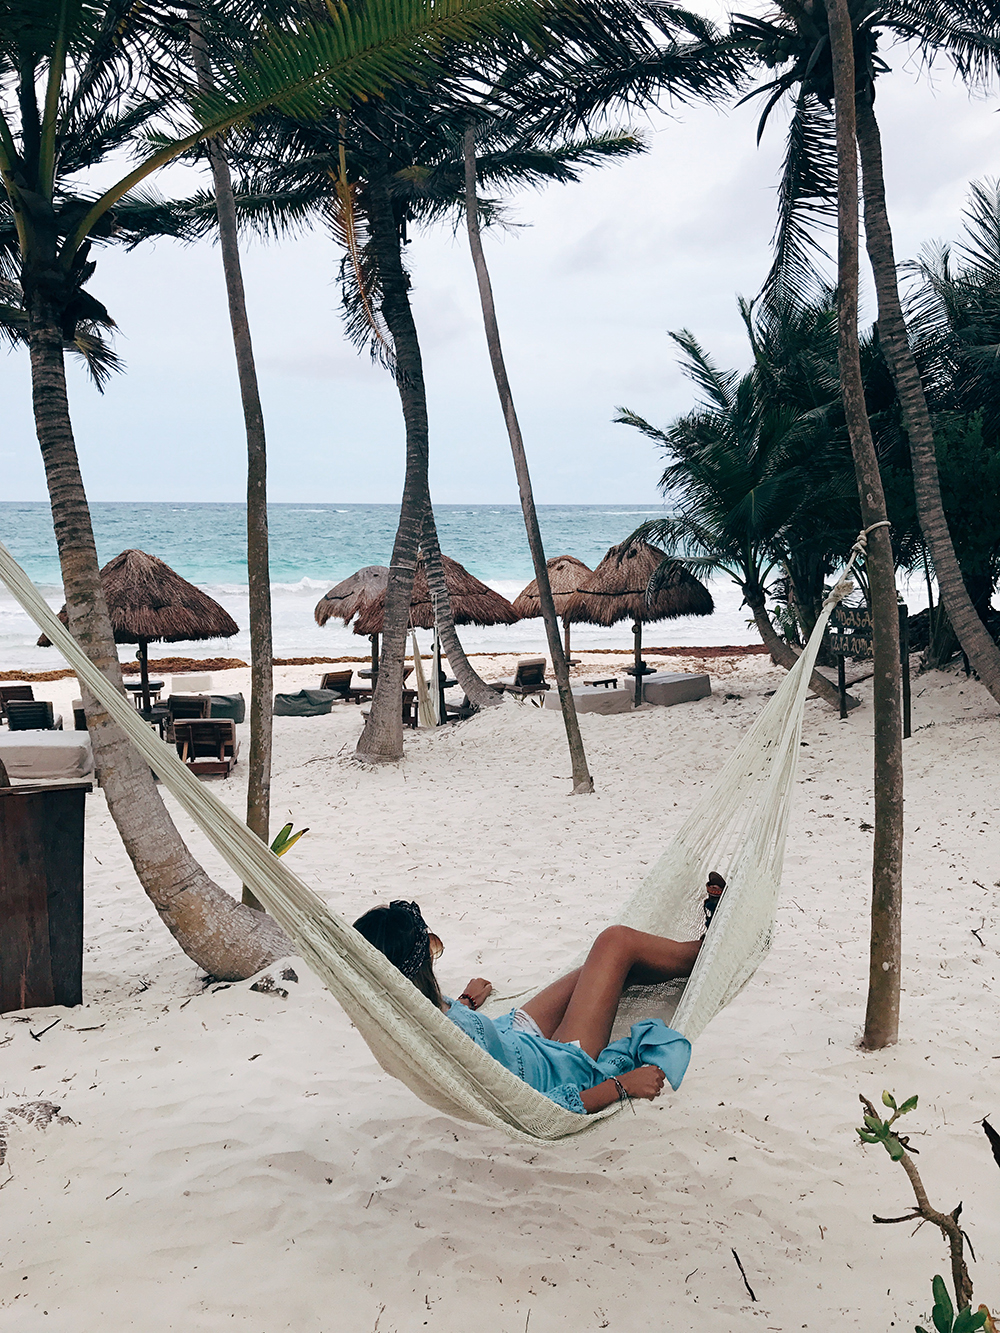 What It's Like Being A Full Time Blogger, full time blogger, blogger, melrodstyle, blogger tips, ootd, fashion, beauty, travel, coco tulum, tulum, la blogger, whittier